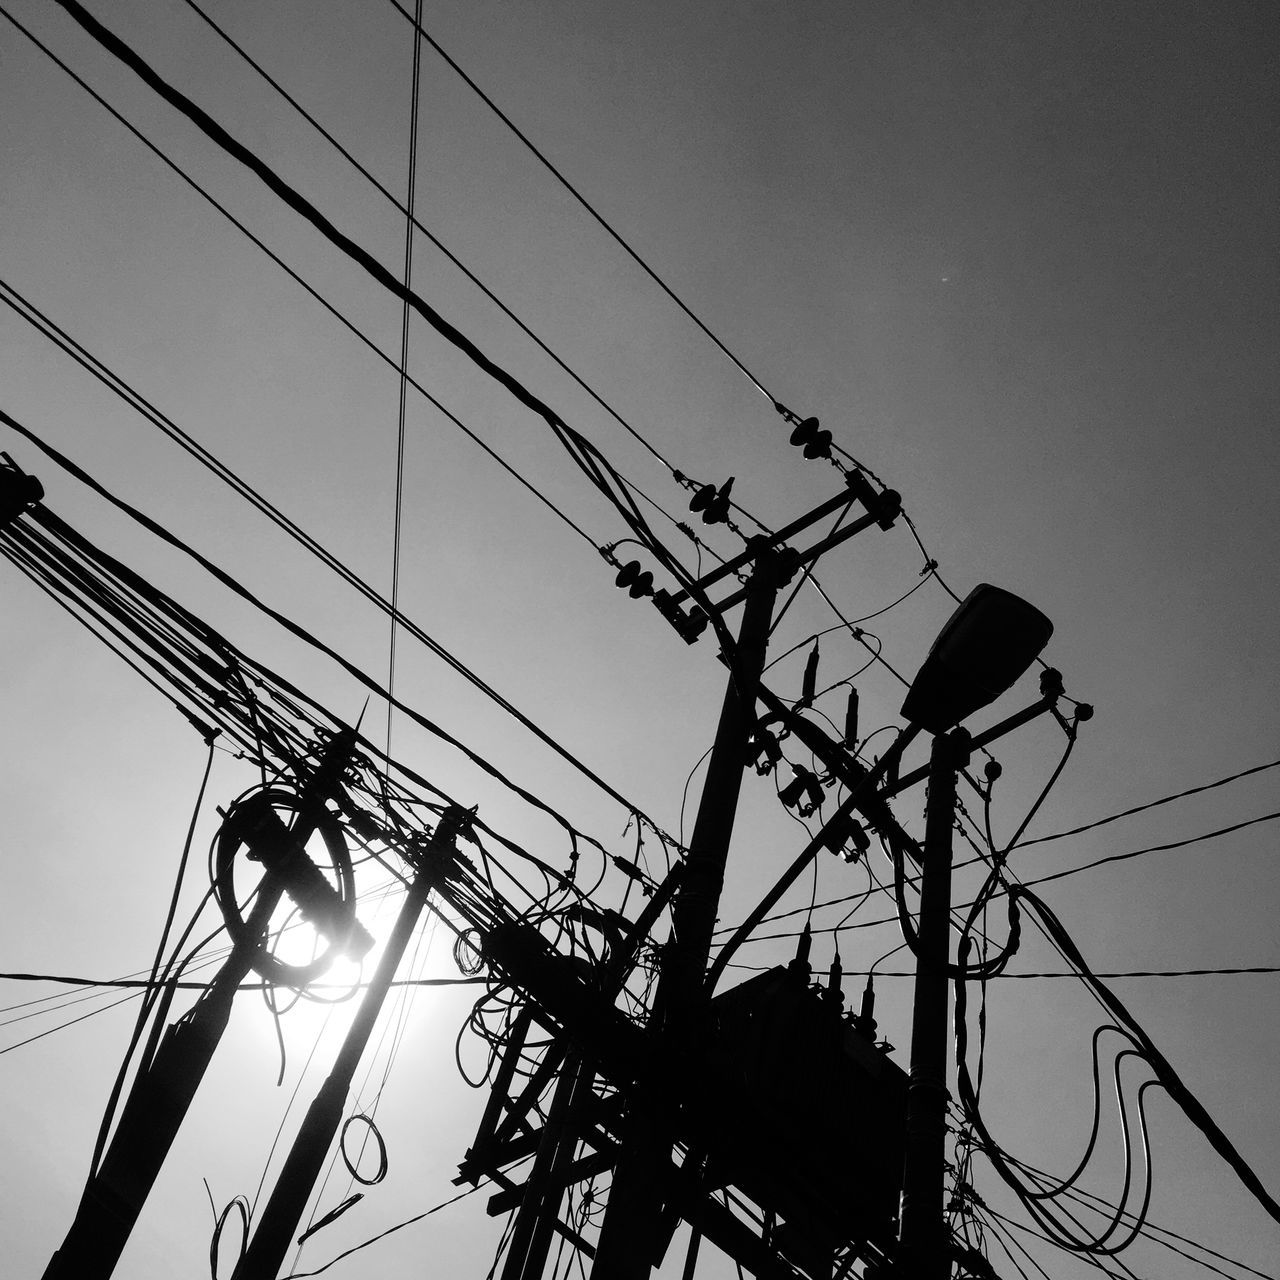 Low Angle View Of Silhouette Electricity Pylons Against Clear Sky